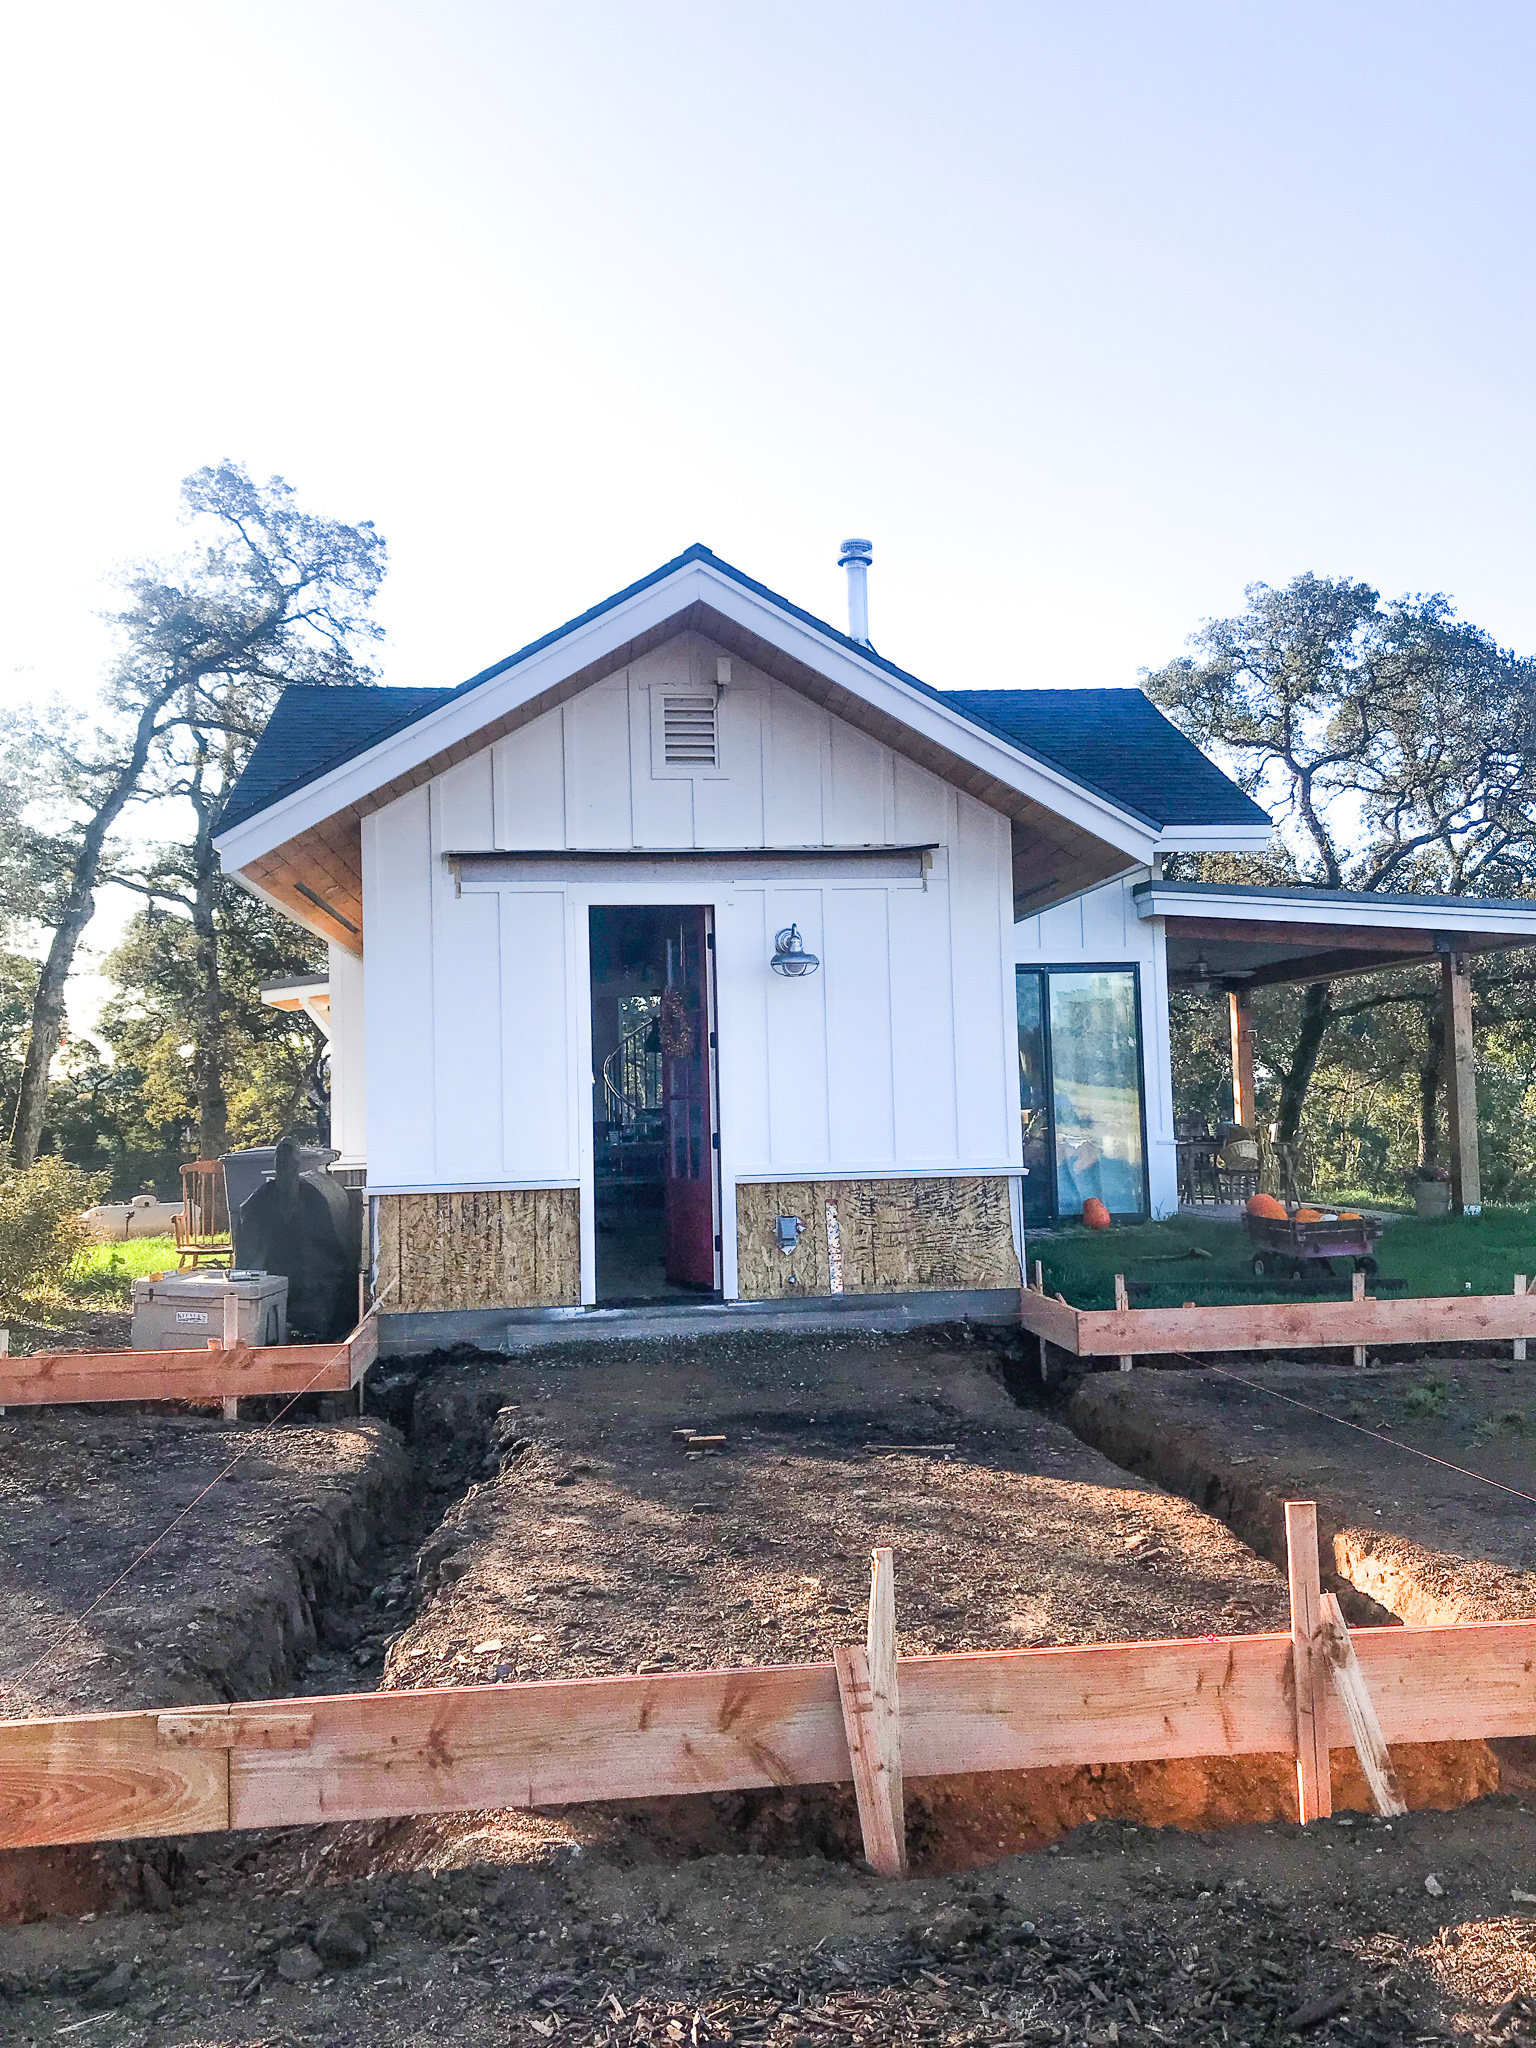 Home Construction  #farmhouse, #modernhouse, #diy, #diyconstruction, #homesteading, #homeviews, #acreage, #whitefarmhouse, #fixerupper, #farmhouselove, #fixerupper, #diy #diyhouse #diyfarmhouse #homebuild #farmhouseview #farmhousegoals #homebuilding, #construction,  #diyconstruction, #modernfarmhouse, #building, #dreamhome, #dyhome, #renovation, #concrete